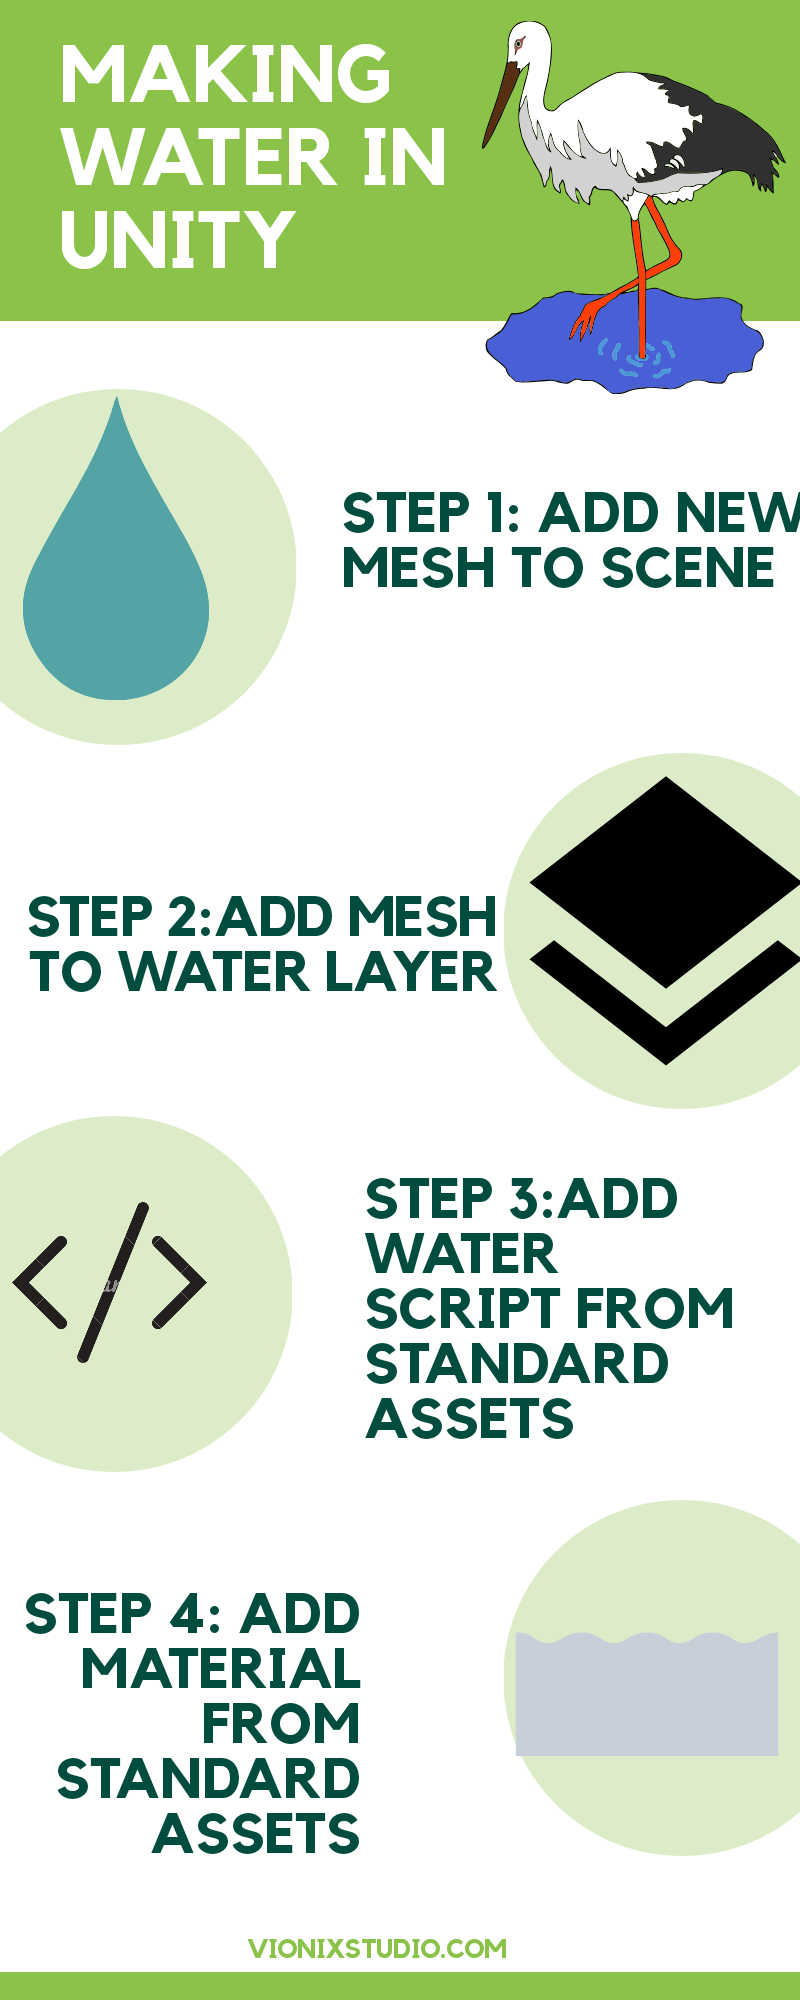 Making water in unity